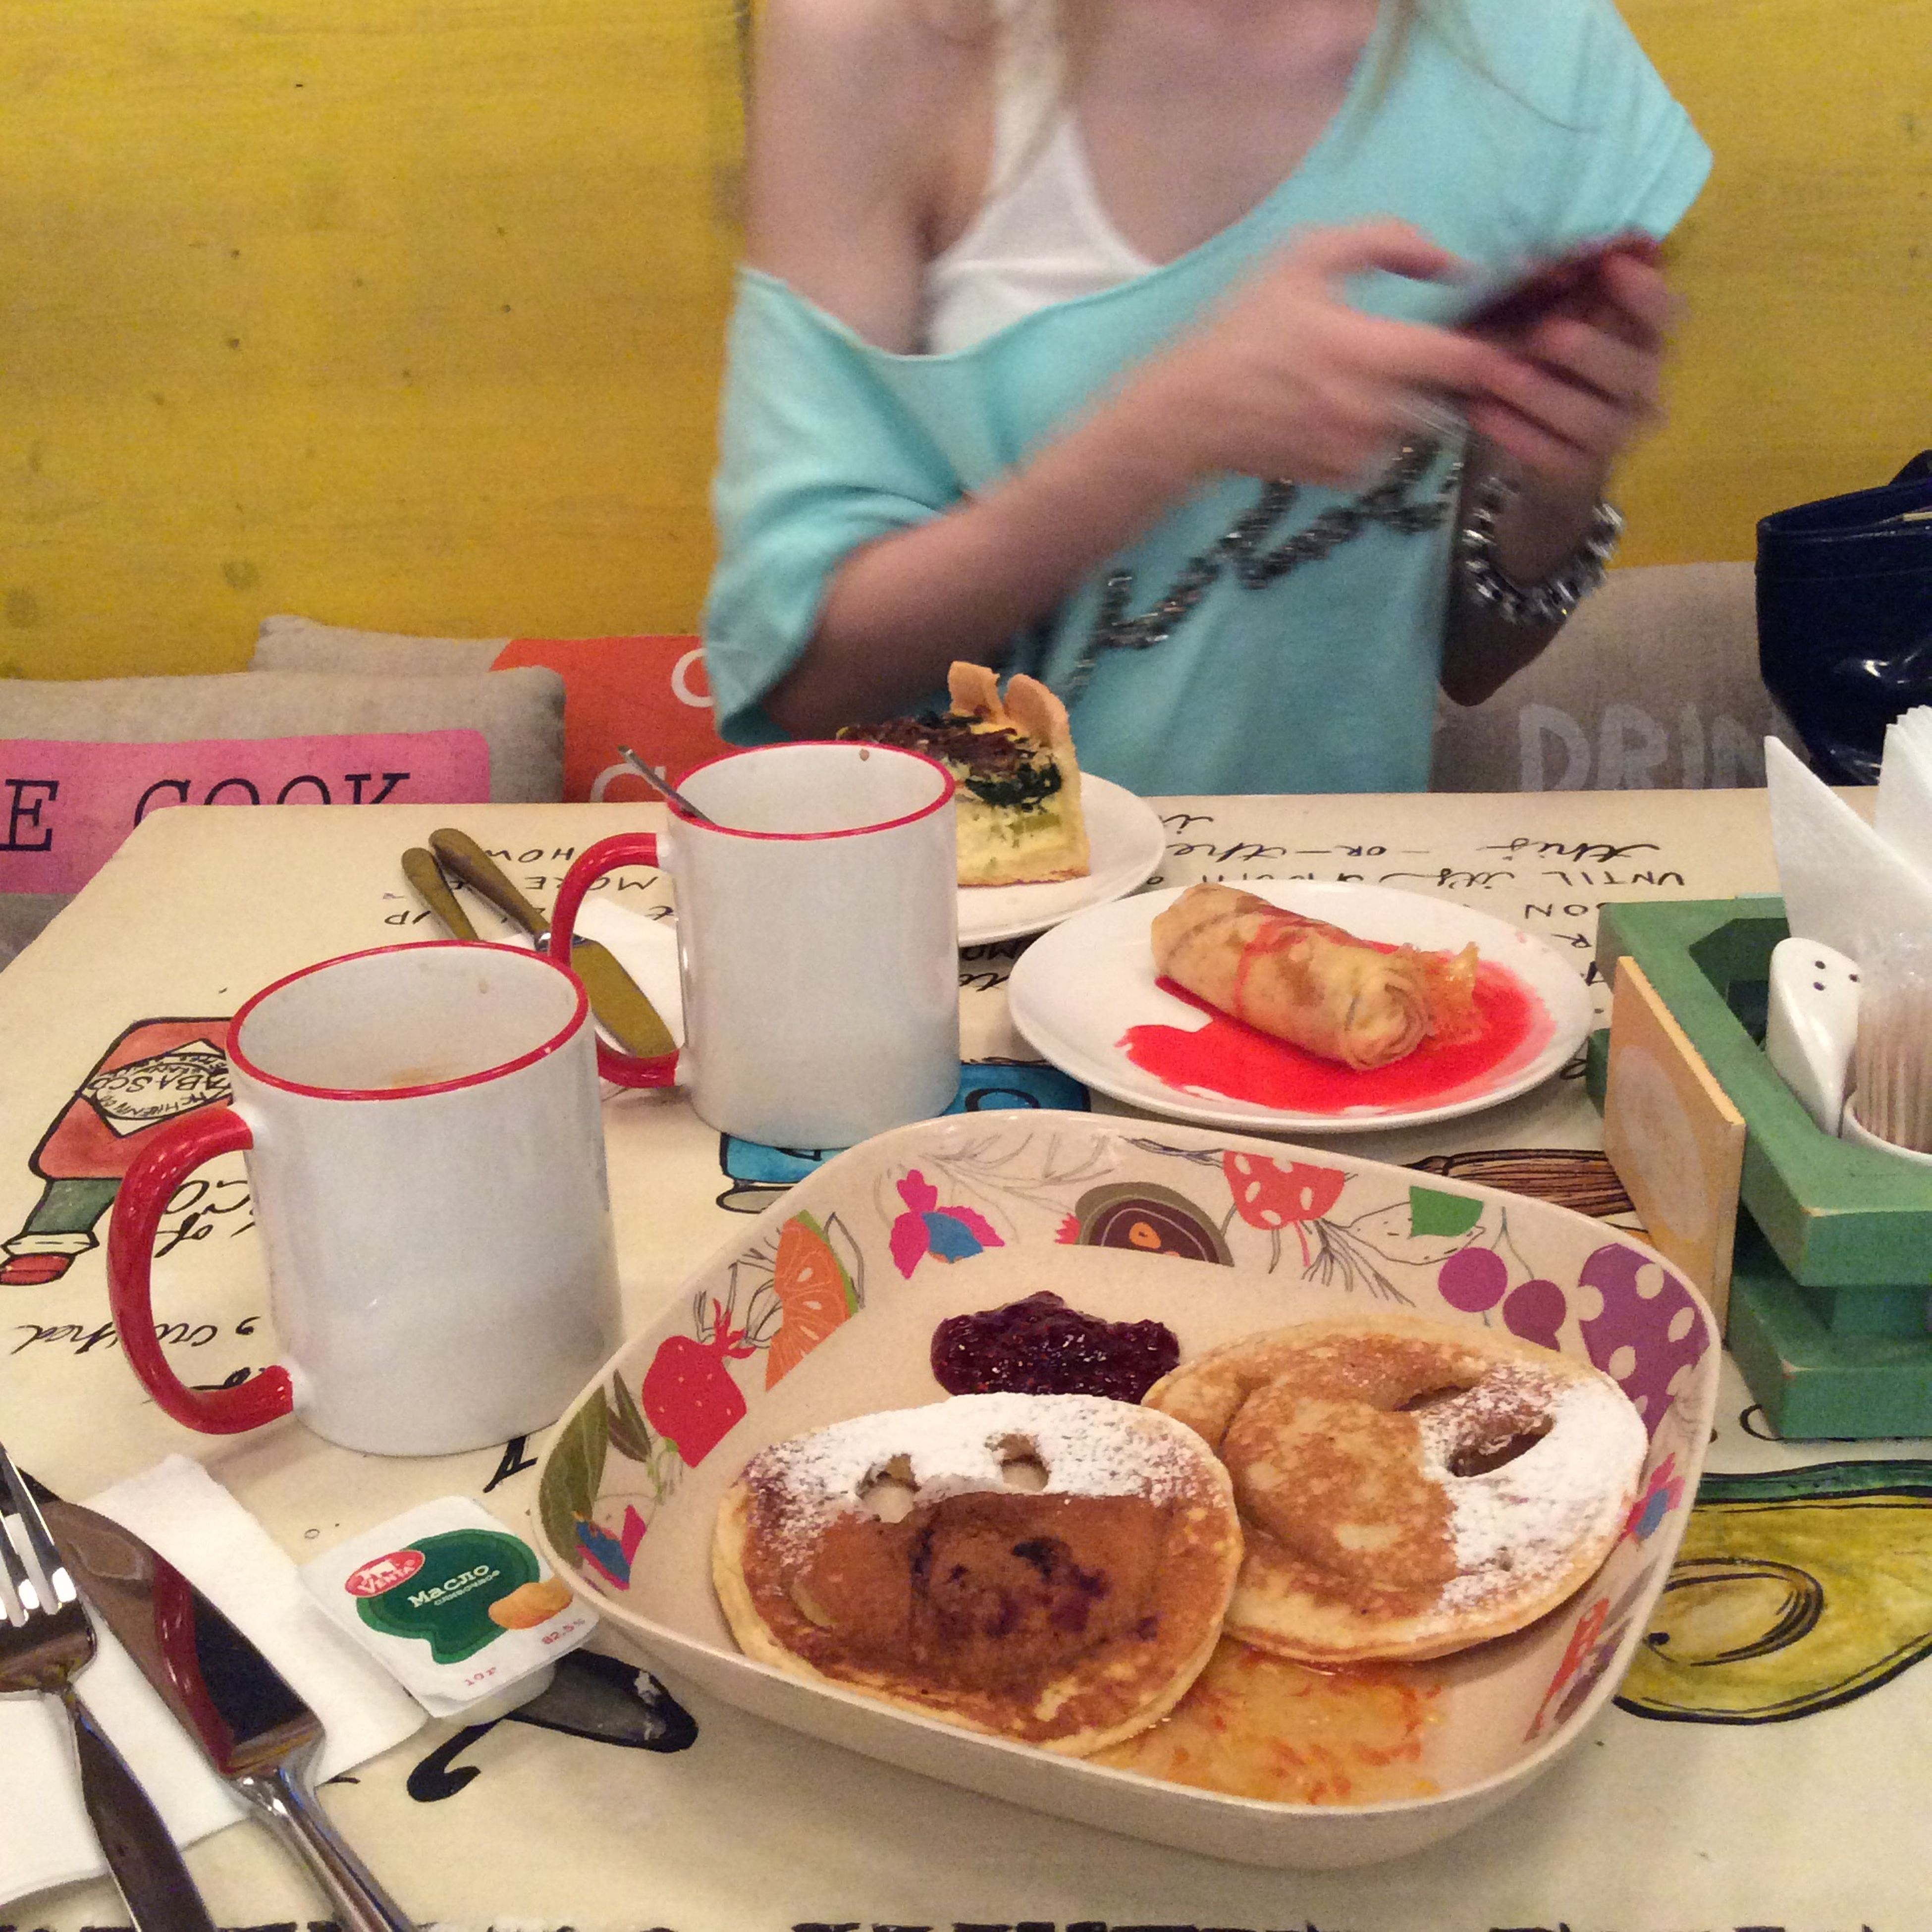 food and drink, indoors, food, freshness, person, holding, lifestyles, high angle view, table, men, sweet food, indulgence, unhealthy eating, ready-to-eat, leisure activity, unrecognizable person